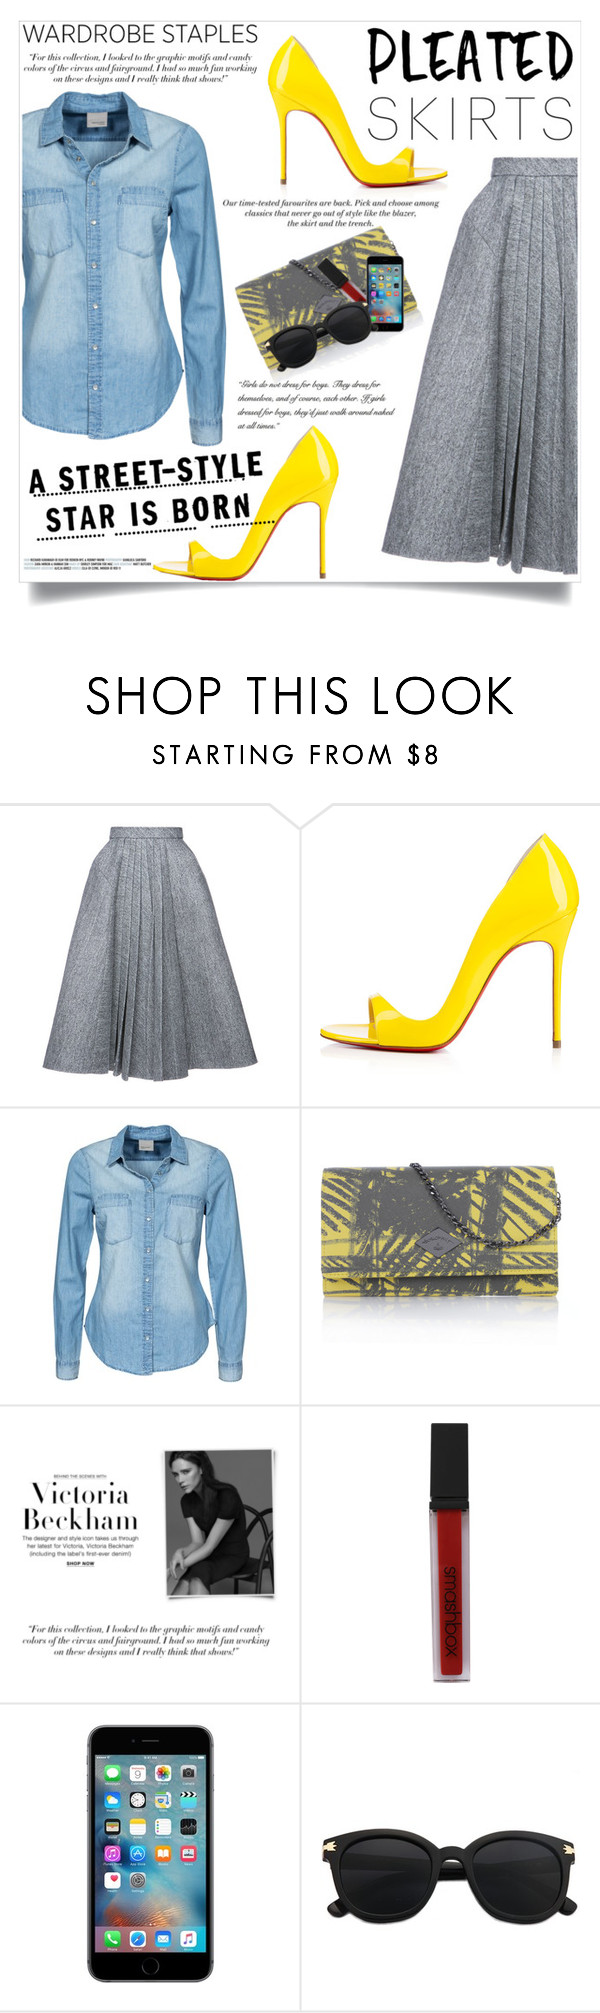 """""""Pleated Skirt"""" by natalie1523 on Polyvore featuring Dice Kayek, Christian Louboutin, Vero Moda, H&M, Vivienne Westwood, Victoria Beckham, Smashbox and pleatedskirts"""